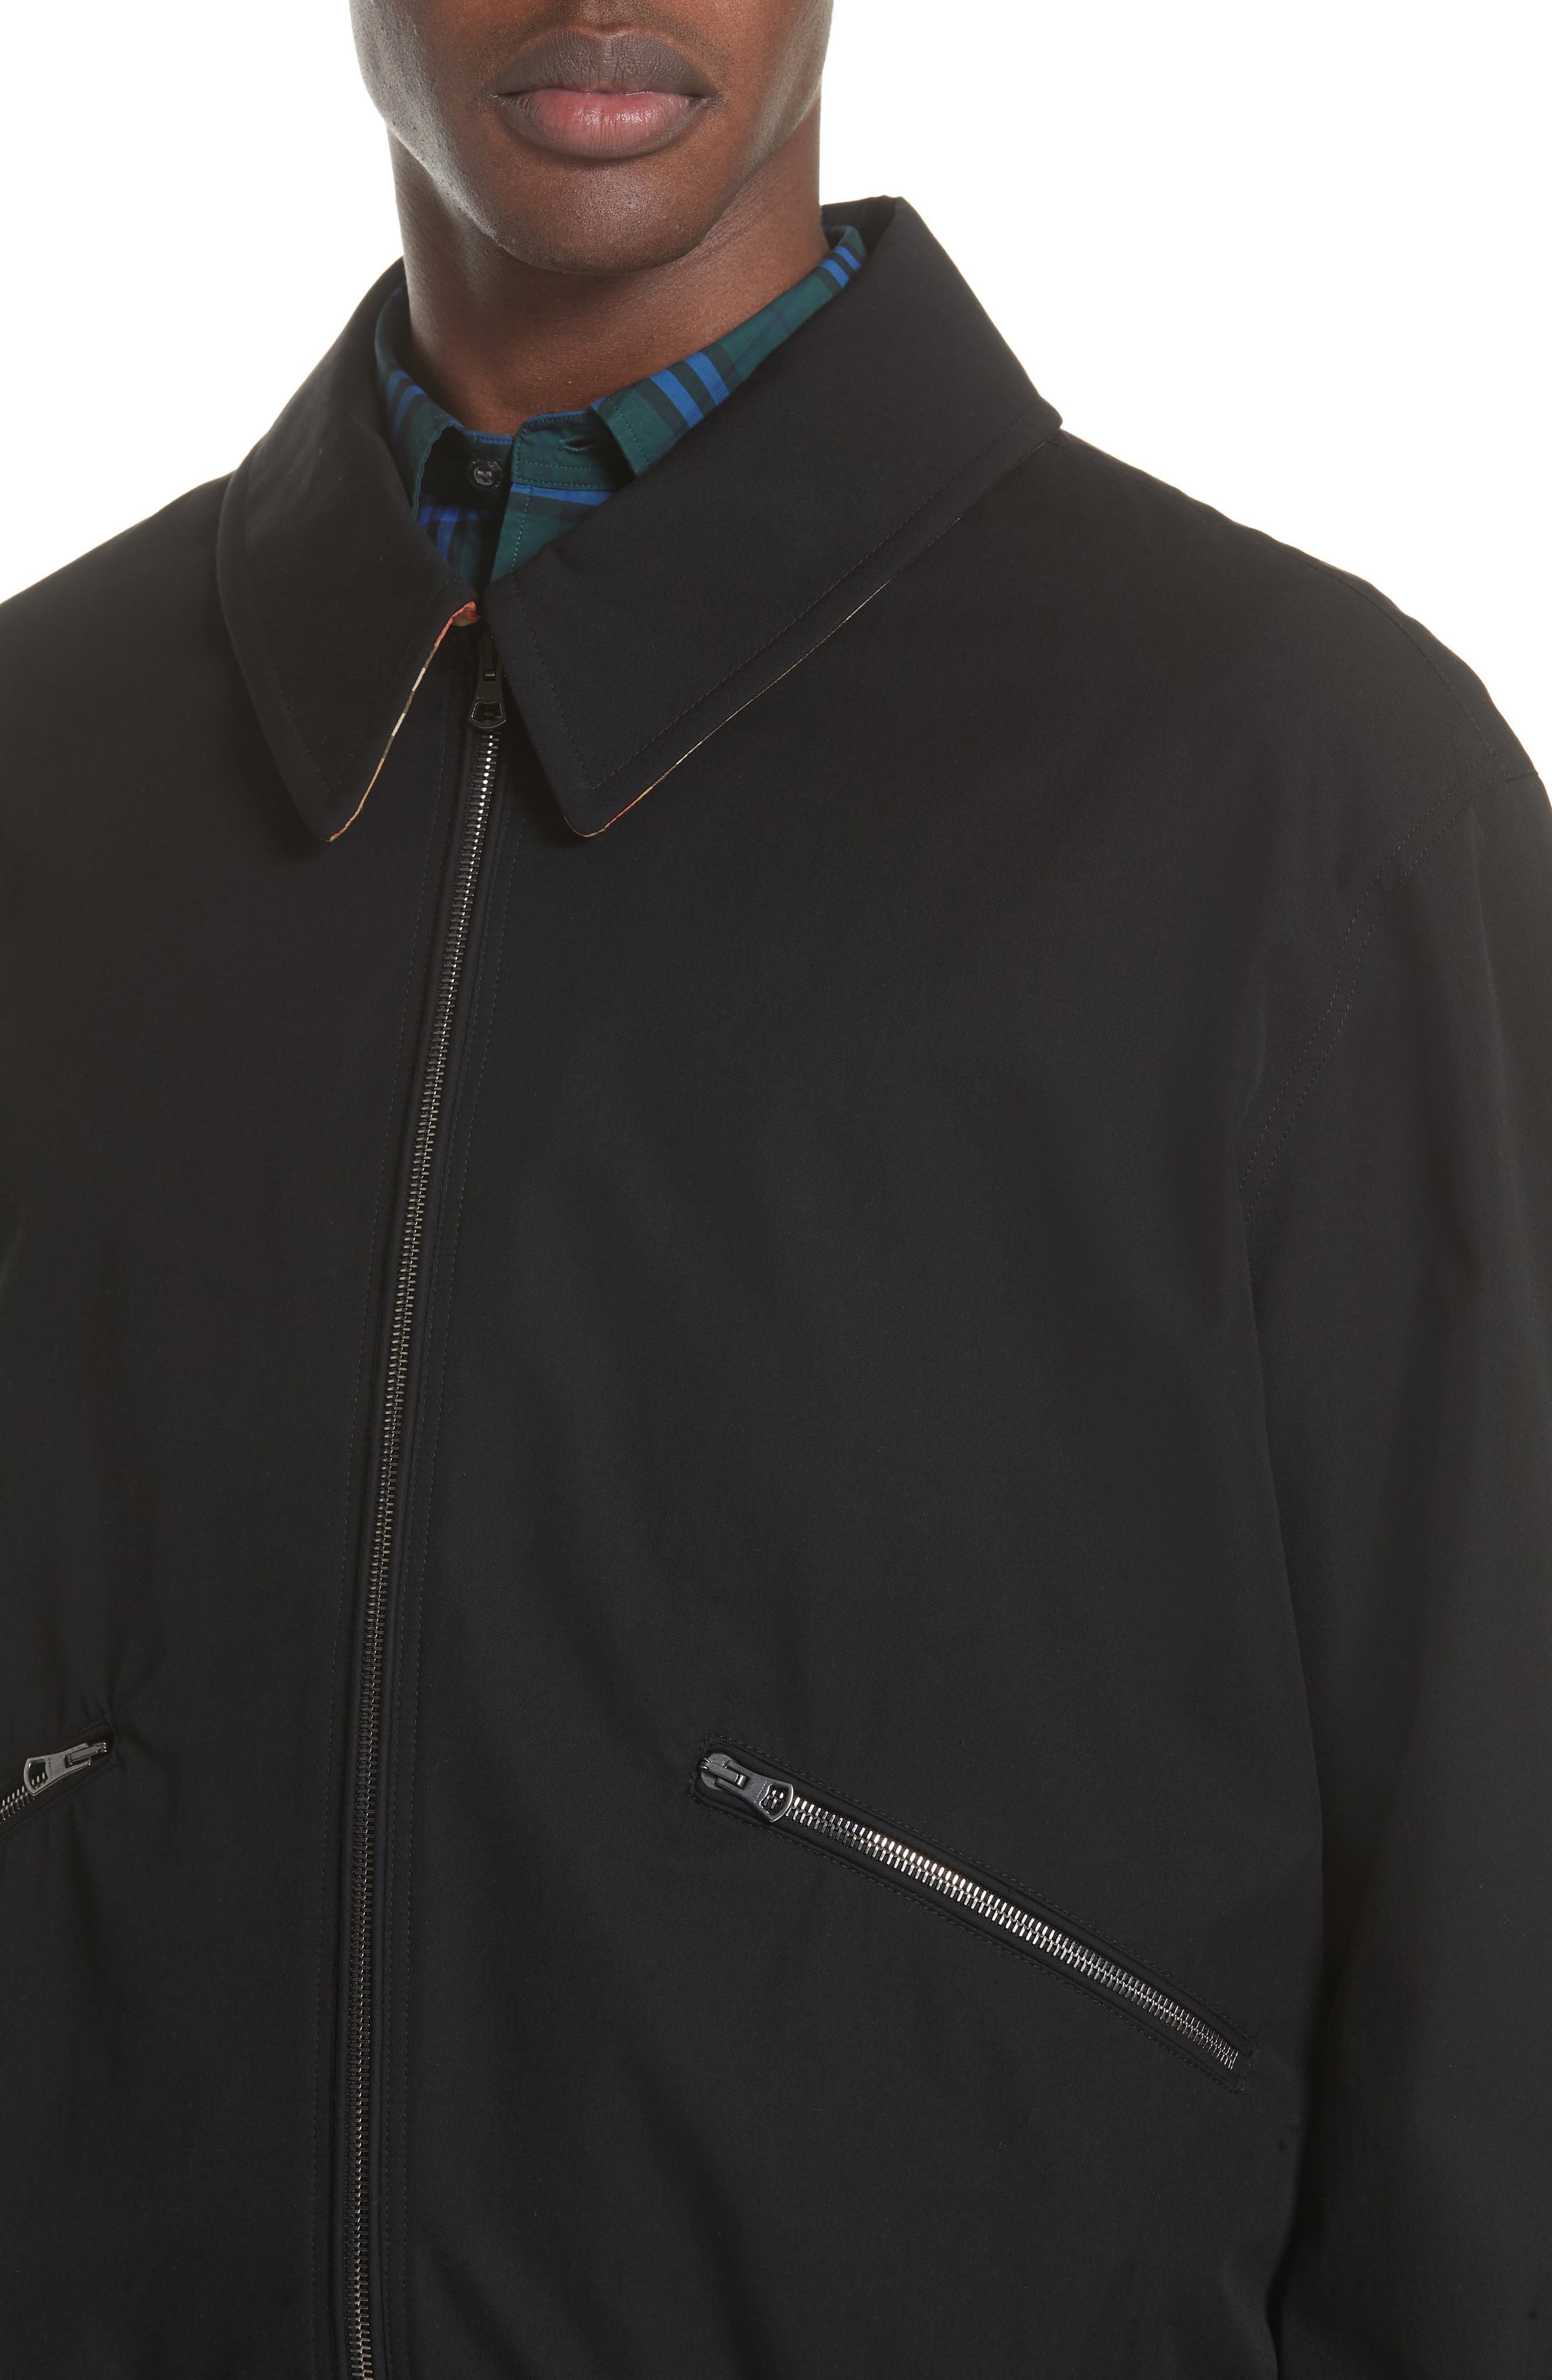 Loweswater Jacket,                             Alternate thumbnail 4, color,                             Black